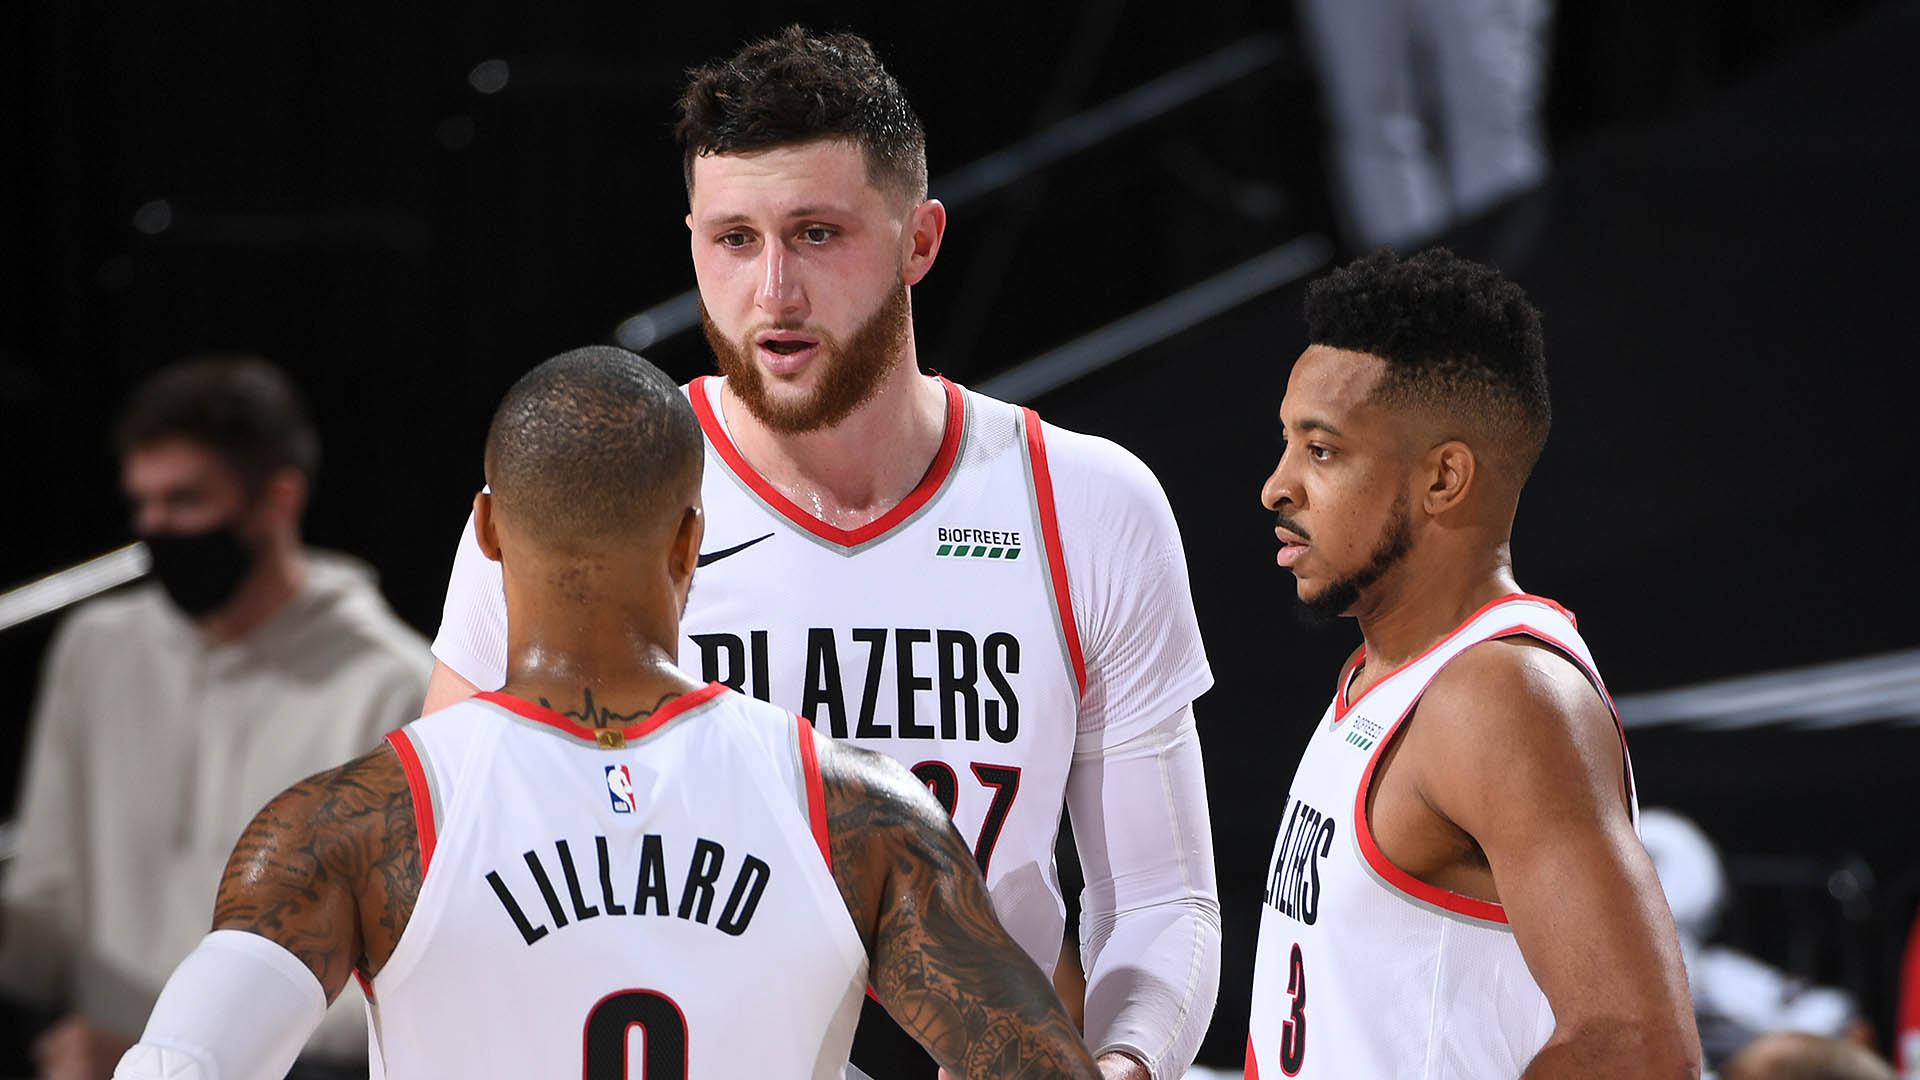 Nuggets continue to shred Blazers with Jusuf Nurkic off the floor